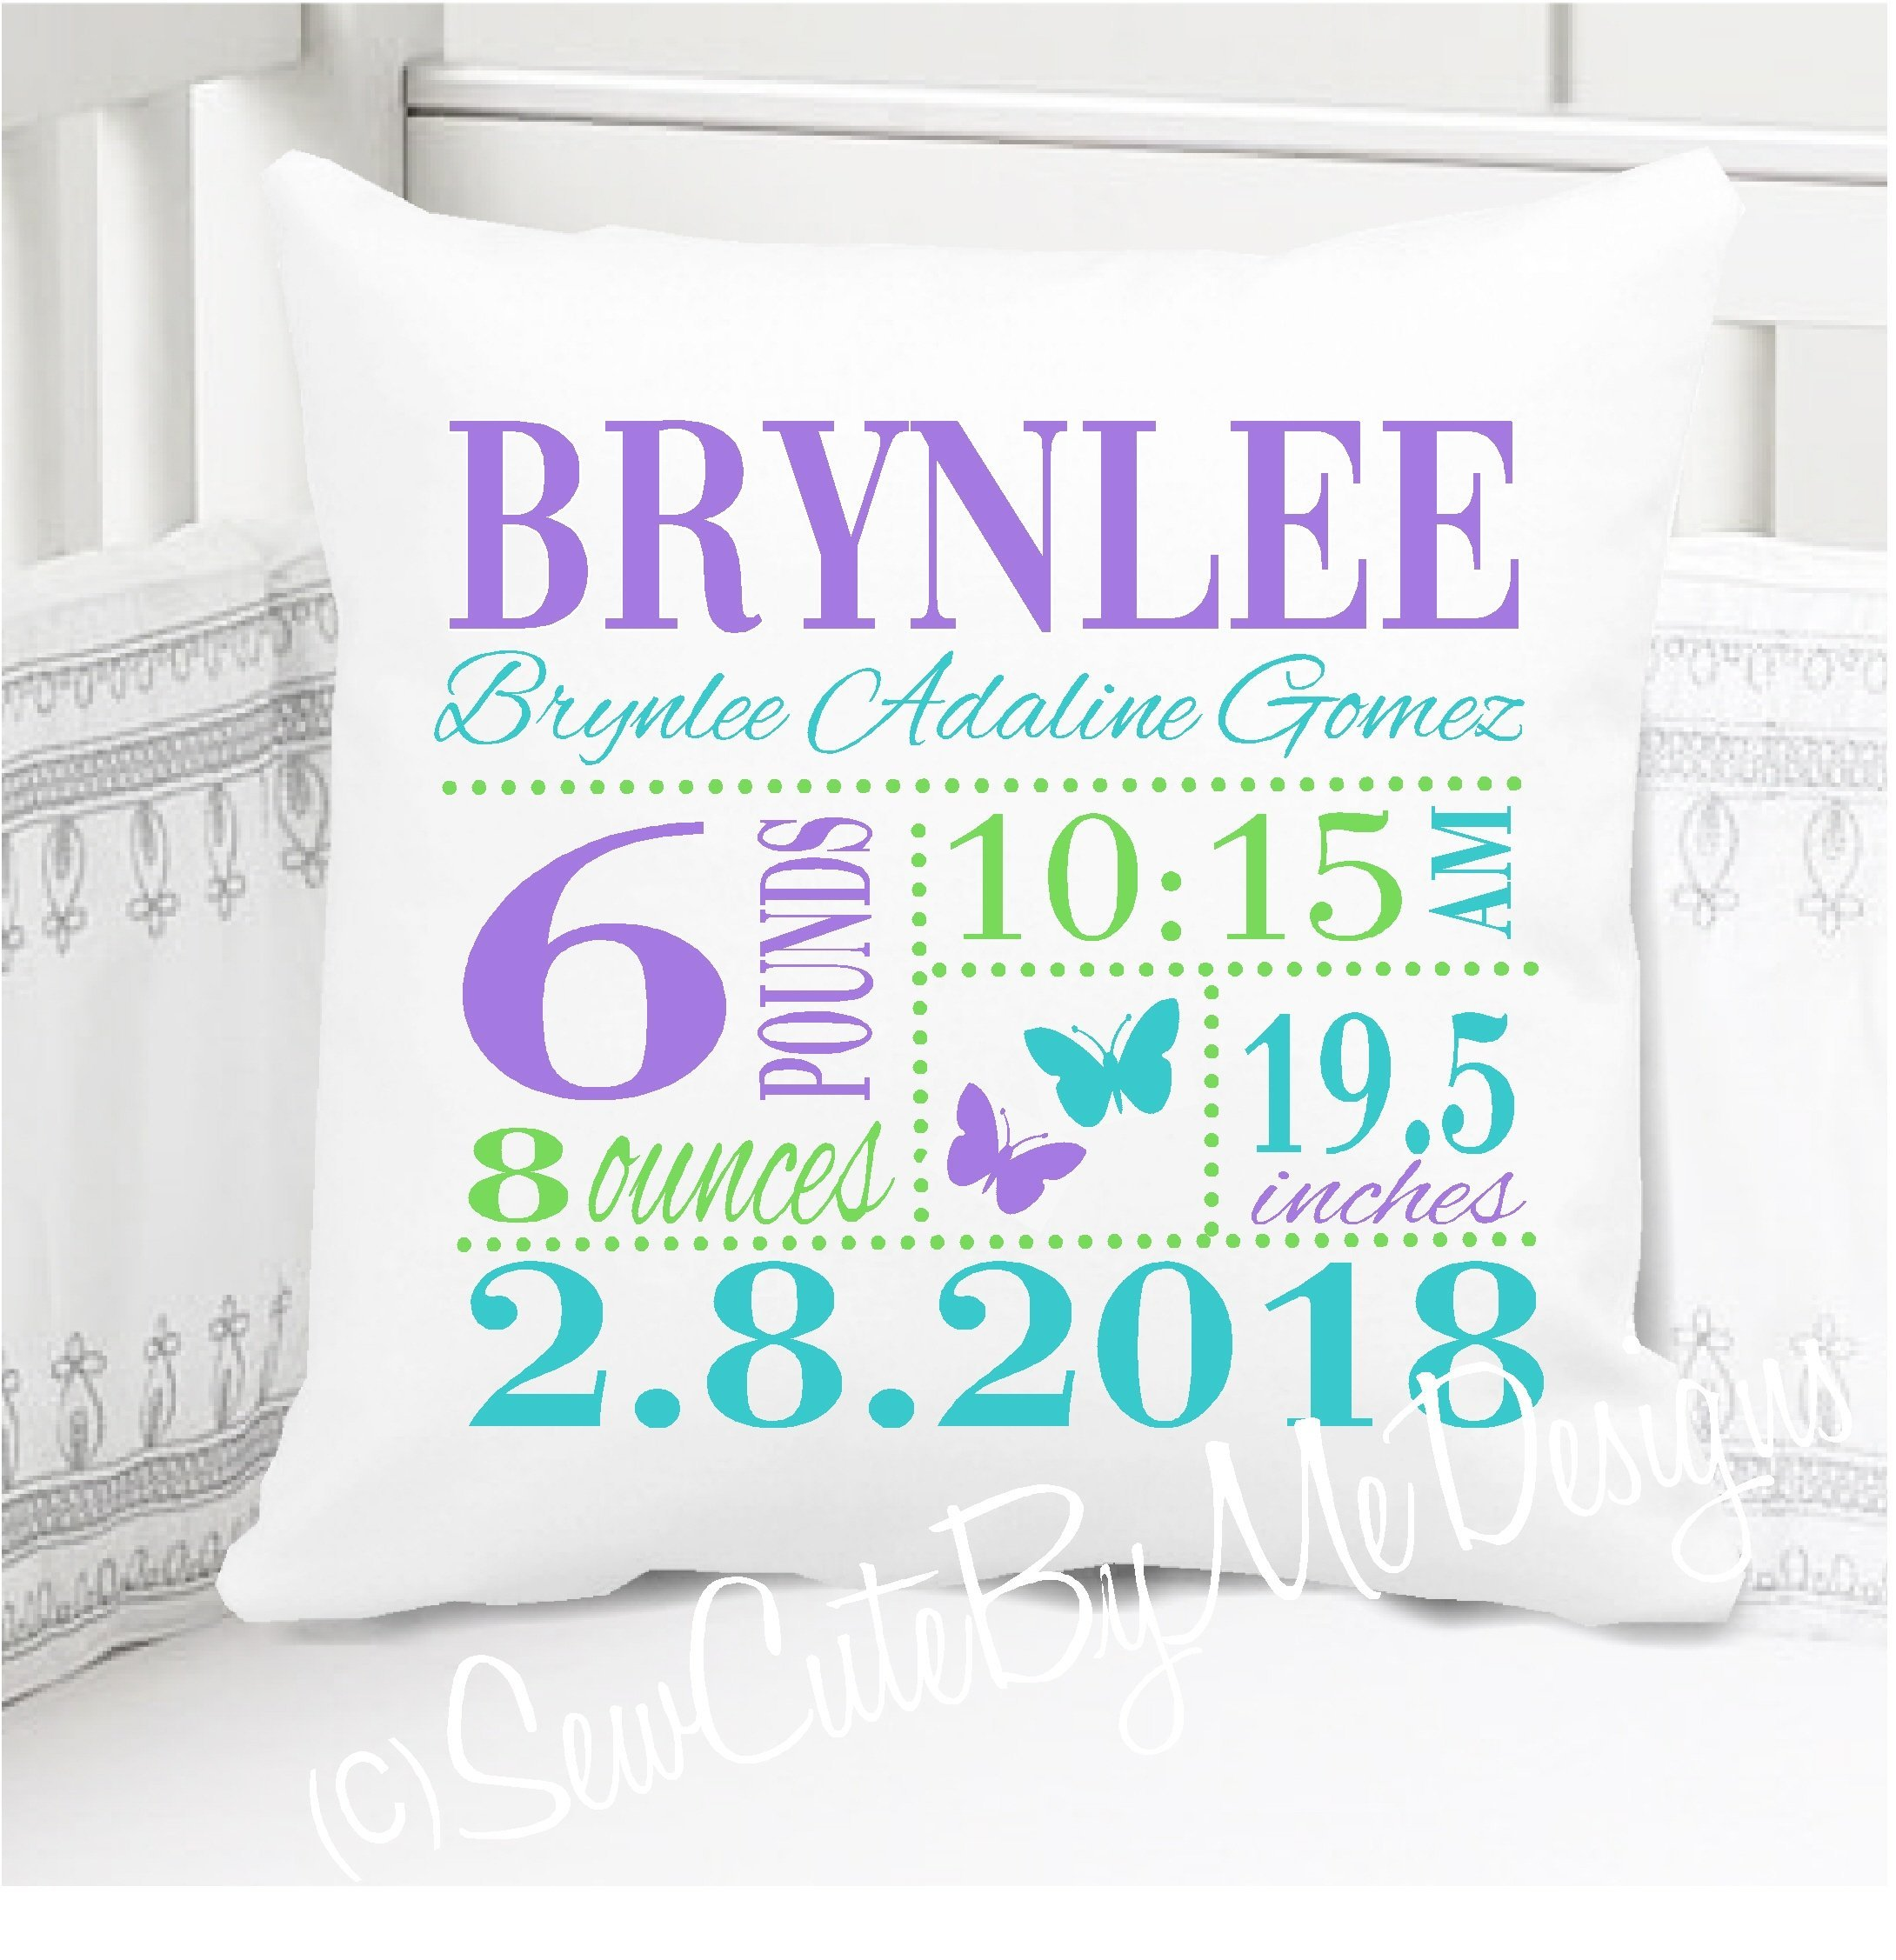 Sew Cute by Me Designs Birth Announcement Pillow for Baby Girls Nojo Butterfly Nursery in Lavender Aqua and Lime - Includes Personalized Pillowcase and Pillow Insert 14'' x 14'' or 16'' x 16''